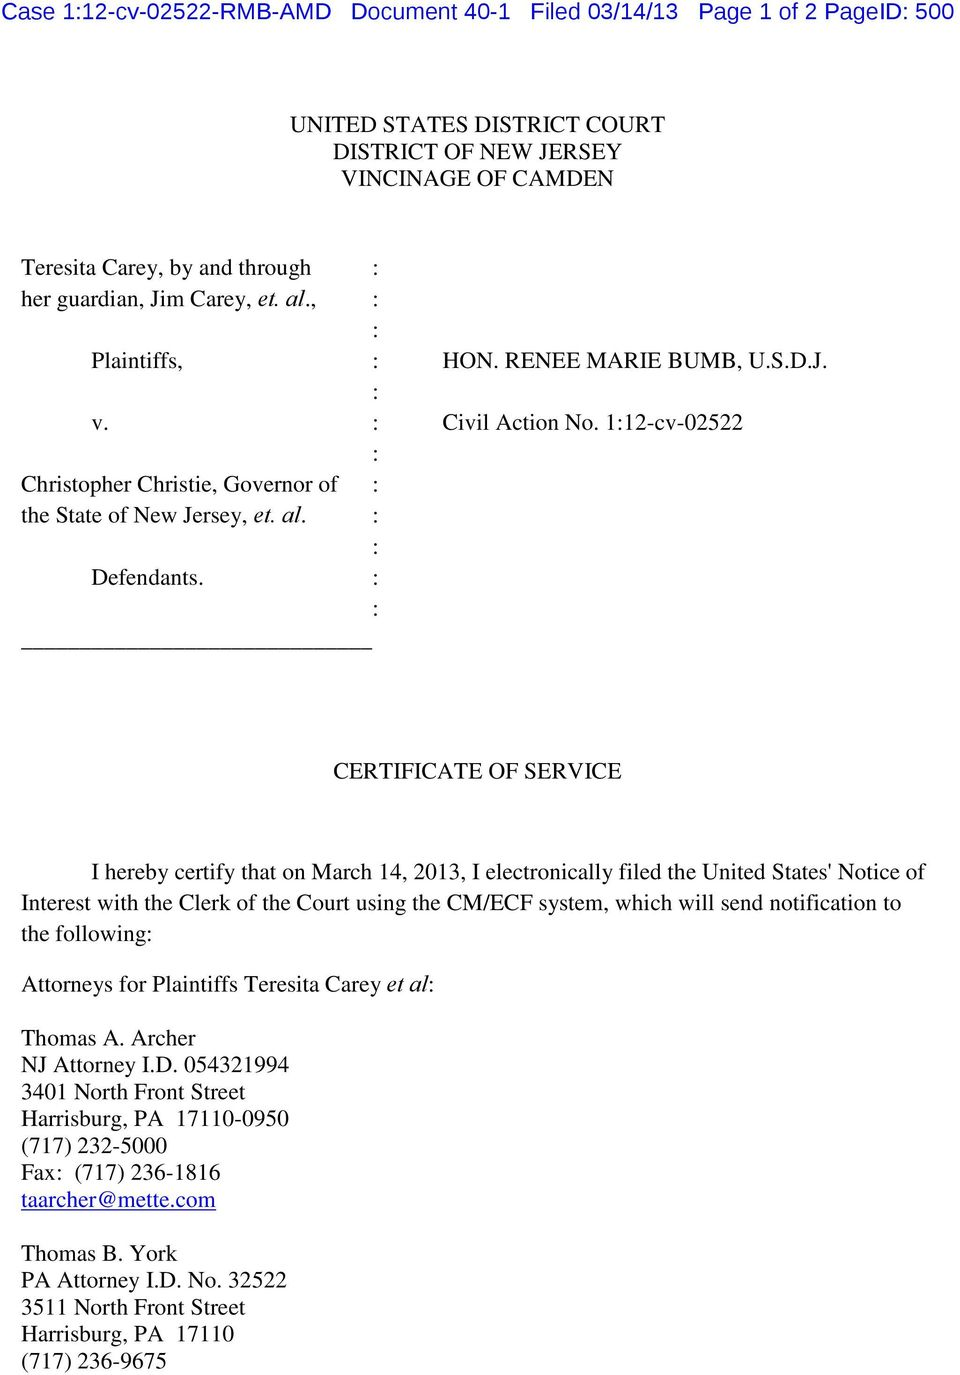 CERTIFICATE OF SERVICE I hereby certify that on March 14, 2013, I electronically filed the United States' Notice of Interest with the Clerk of the Court using the CM/ECF system, which will send